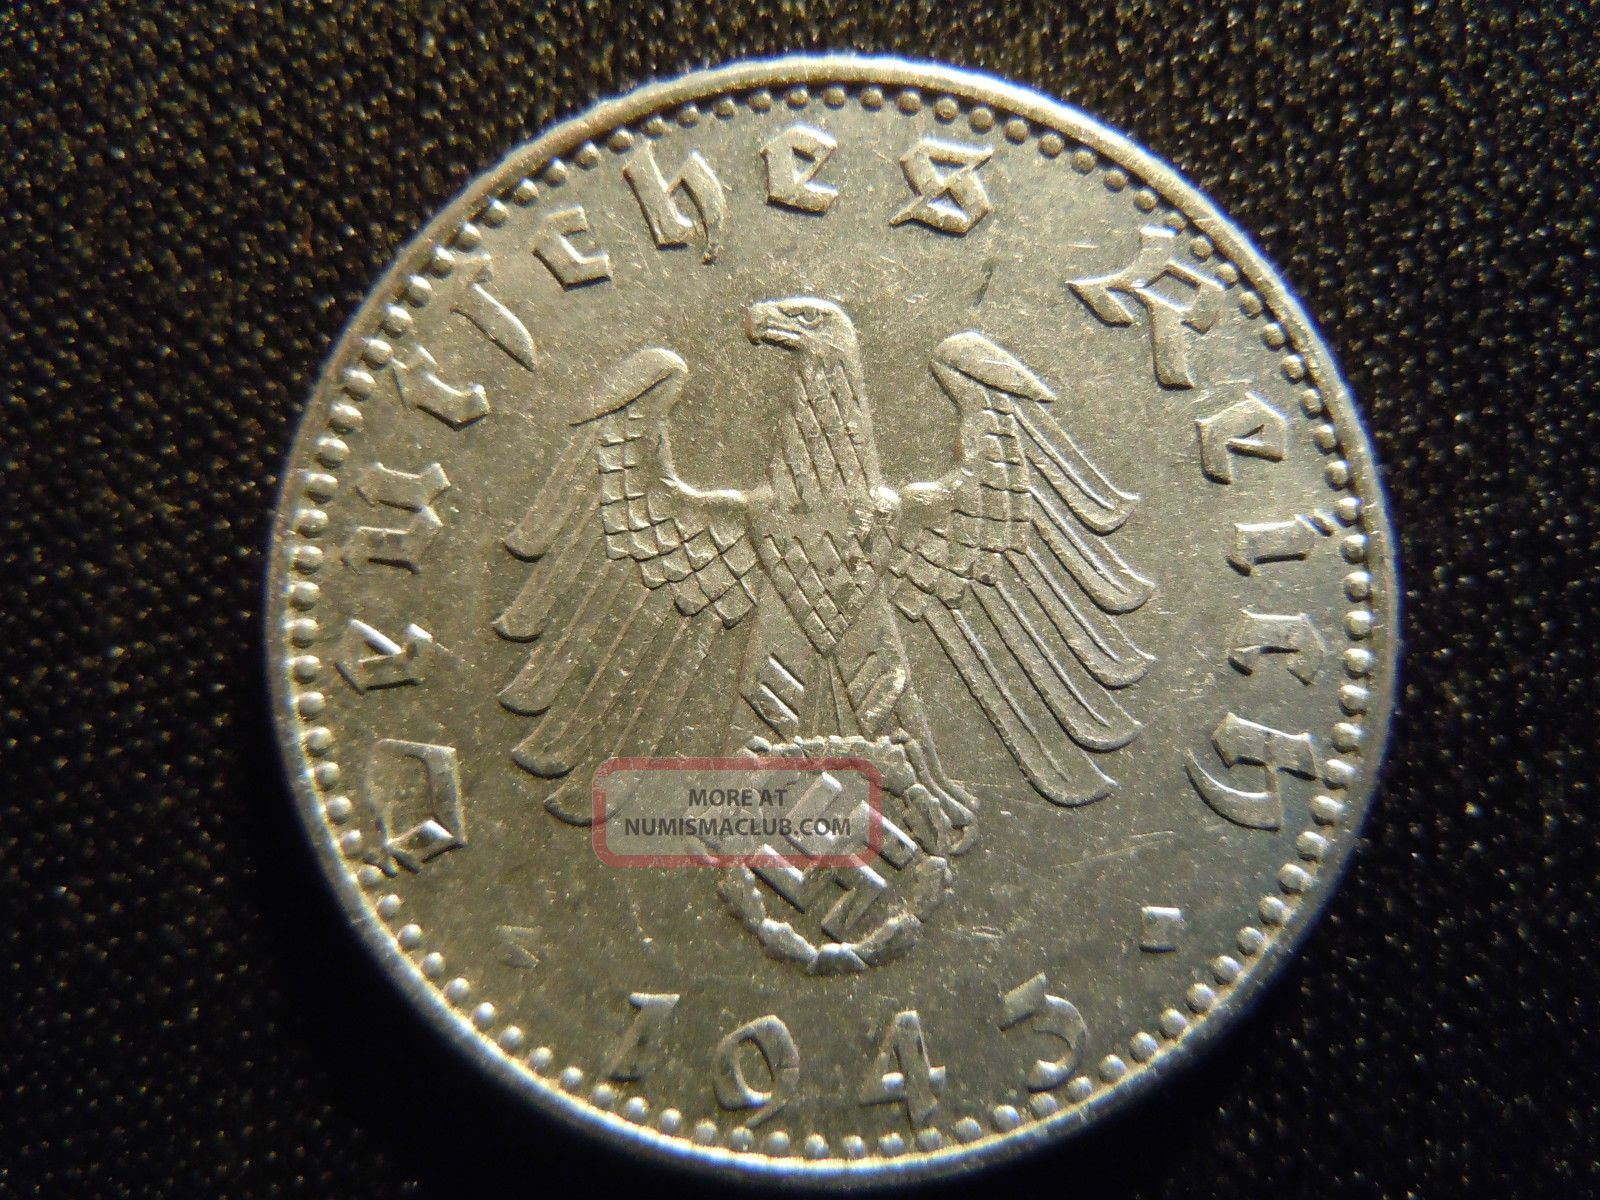 1943 German Ww2 50 Reichspfennig Germany Nazi Coin Swastika World Ab 344 Cent